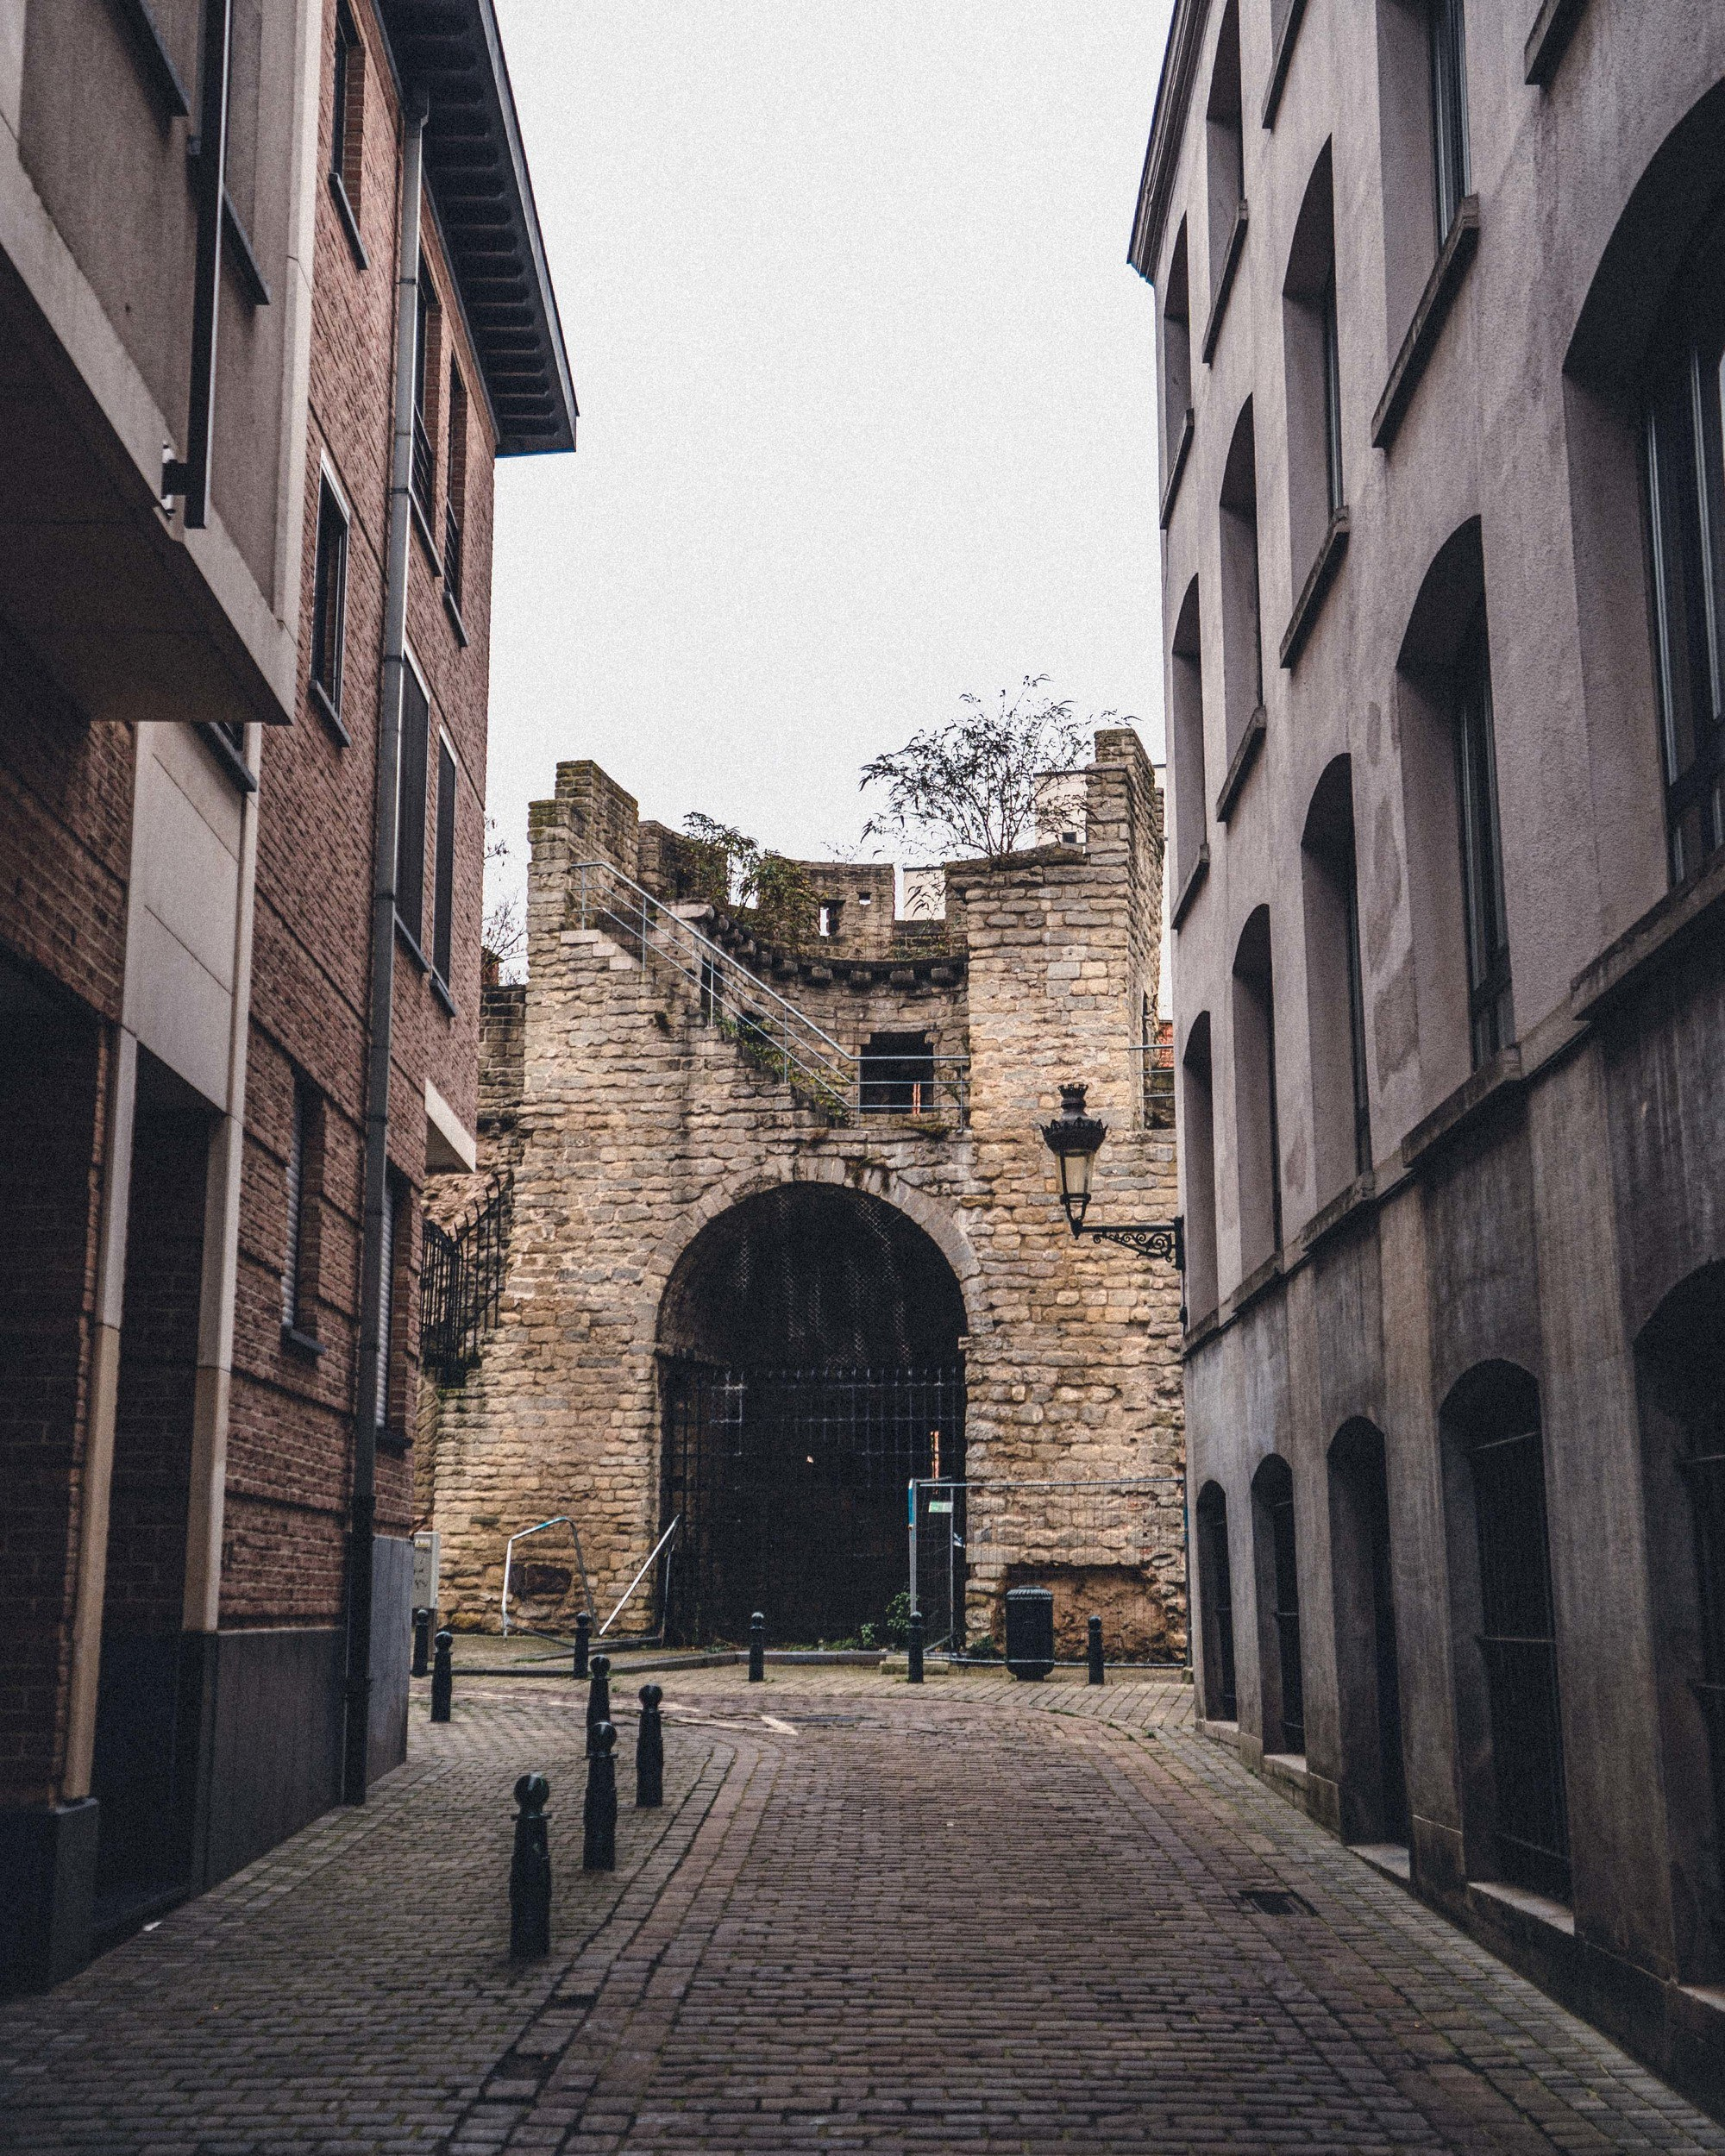 Secrets of Brussels. Looking for the most unusual things to do in Brussels Belgium? here's your ultimate guide to hidden gems and secret spots in Brussels!